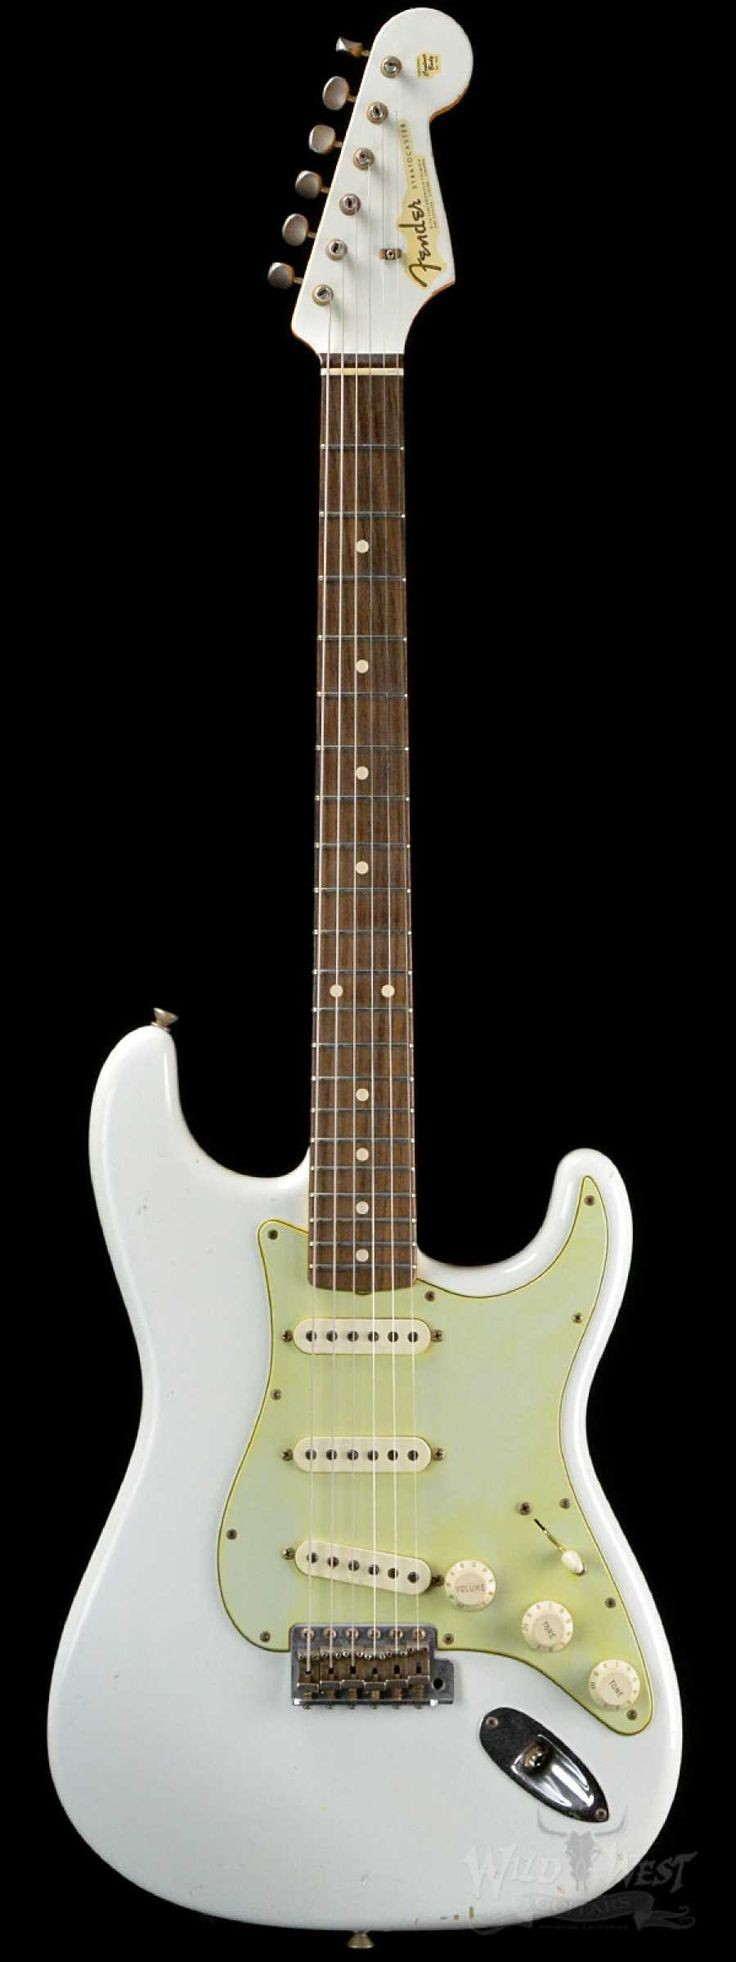 Fender 1960 Stratocaster Relic Olympic White with Matching Headstock Preowned Wild West Guitars